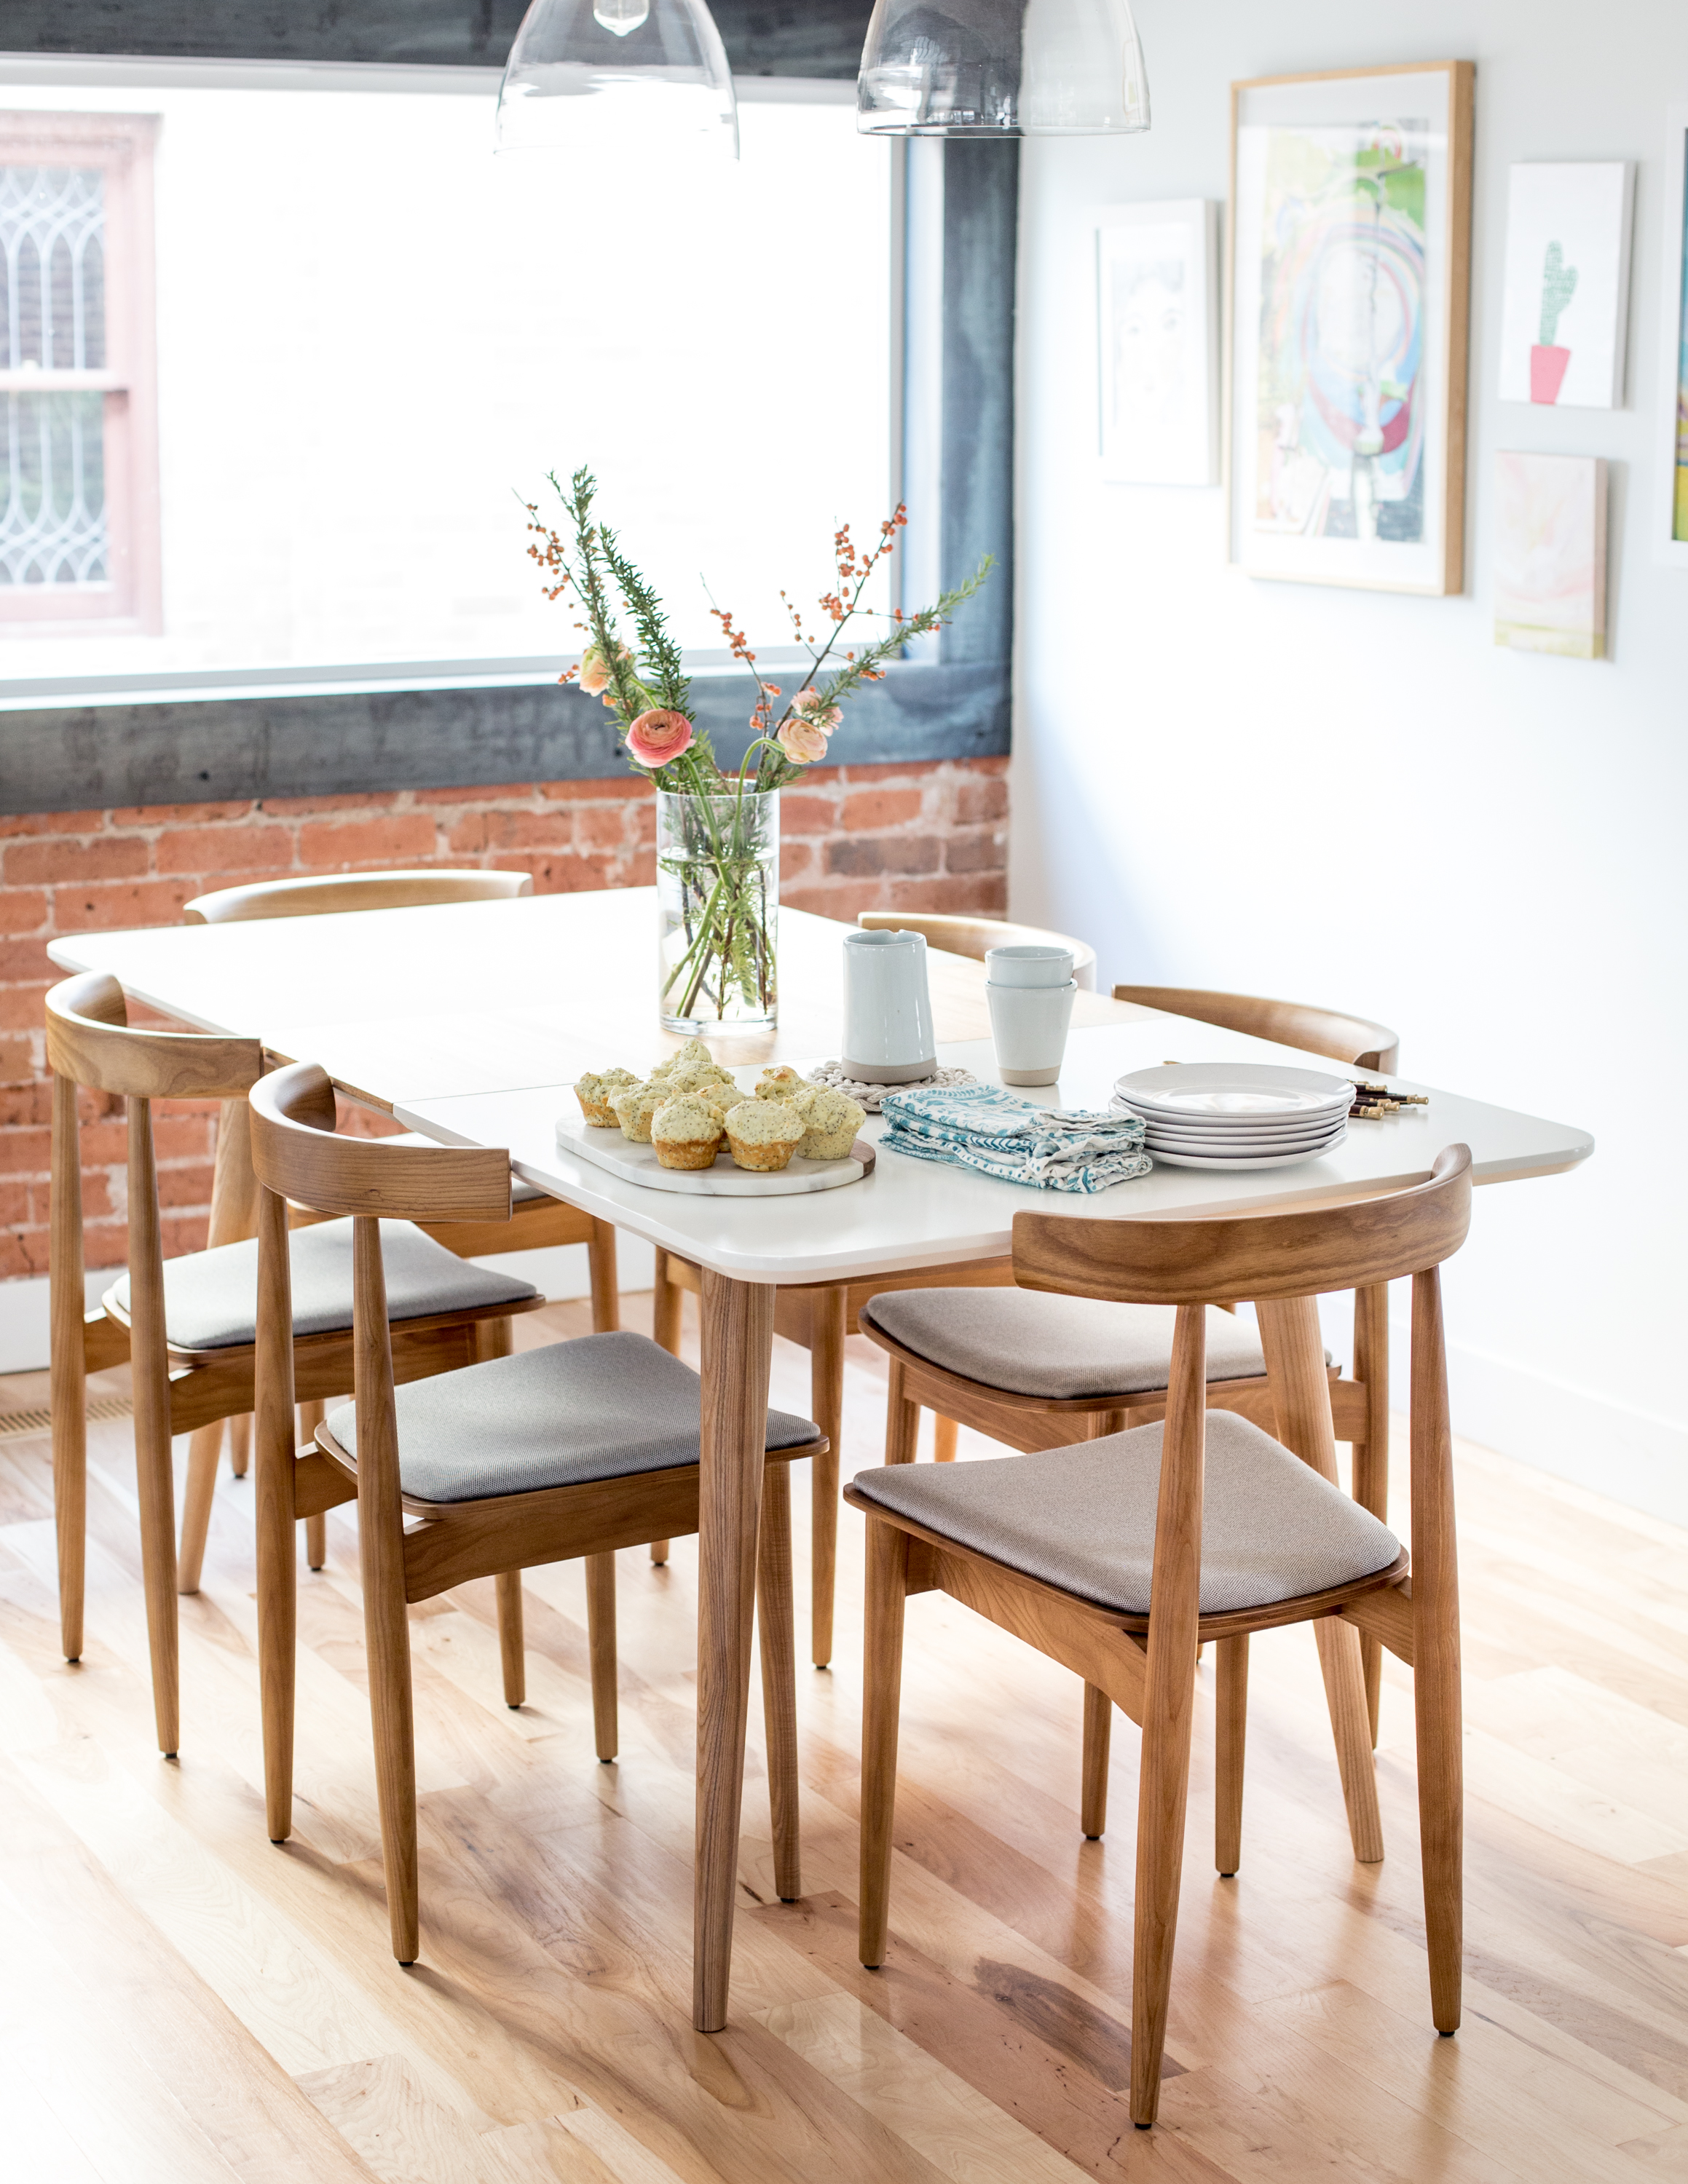 Midcentury Modern Dining Table And Chairs  Flax & Twine